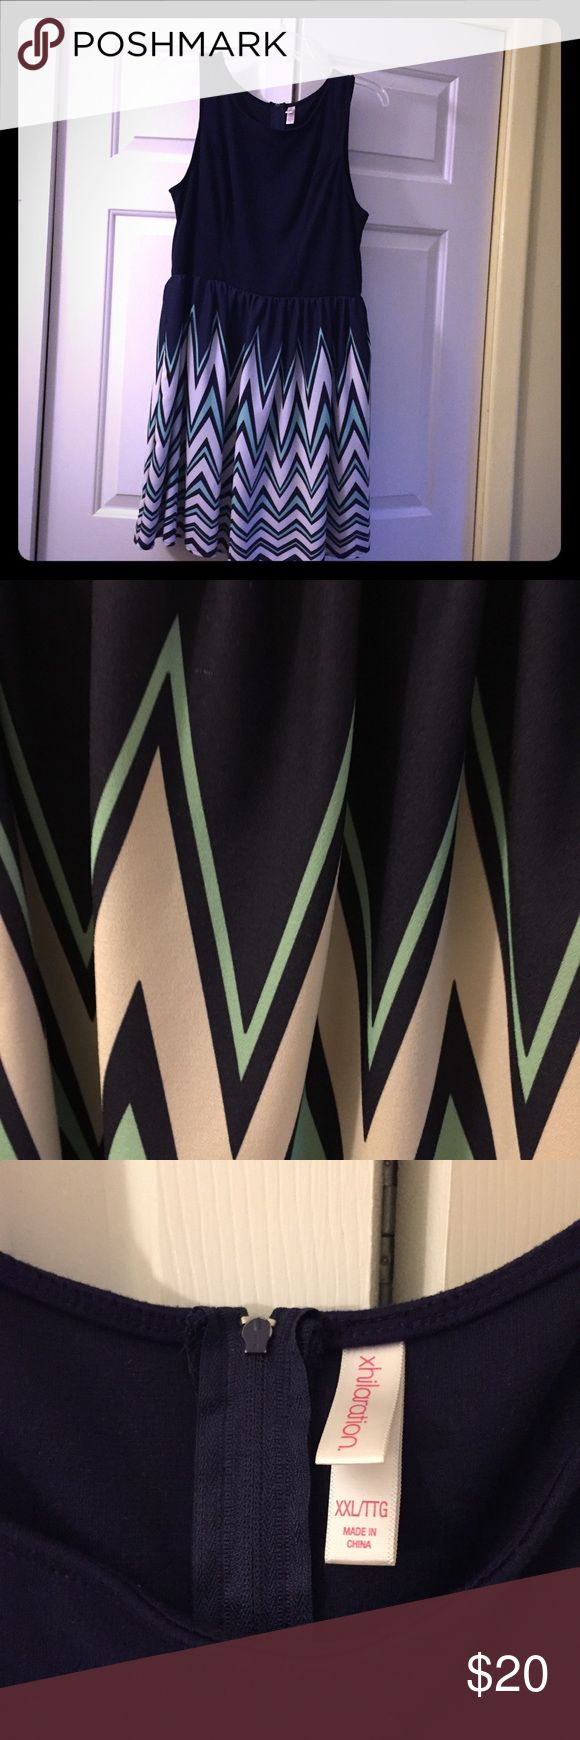 EUC navy chevron dress Super cut for work or the weekend, this chevron dress is in excellent condition. Top is cotton like and bottom is more polyester, printed pattern. Minor mistake as shown in pic but not noticeable unless you're looking for it. Make me an offer or add to a bundle! Xhilaration Dresses Midi